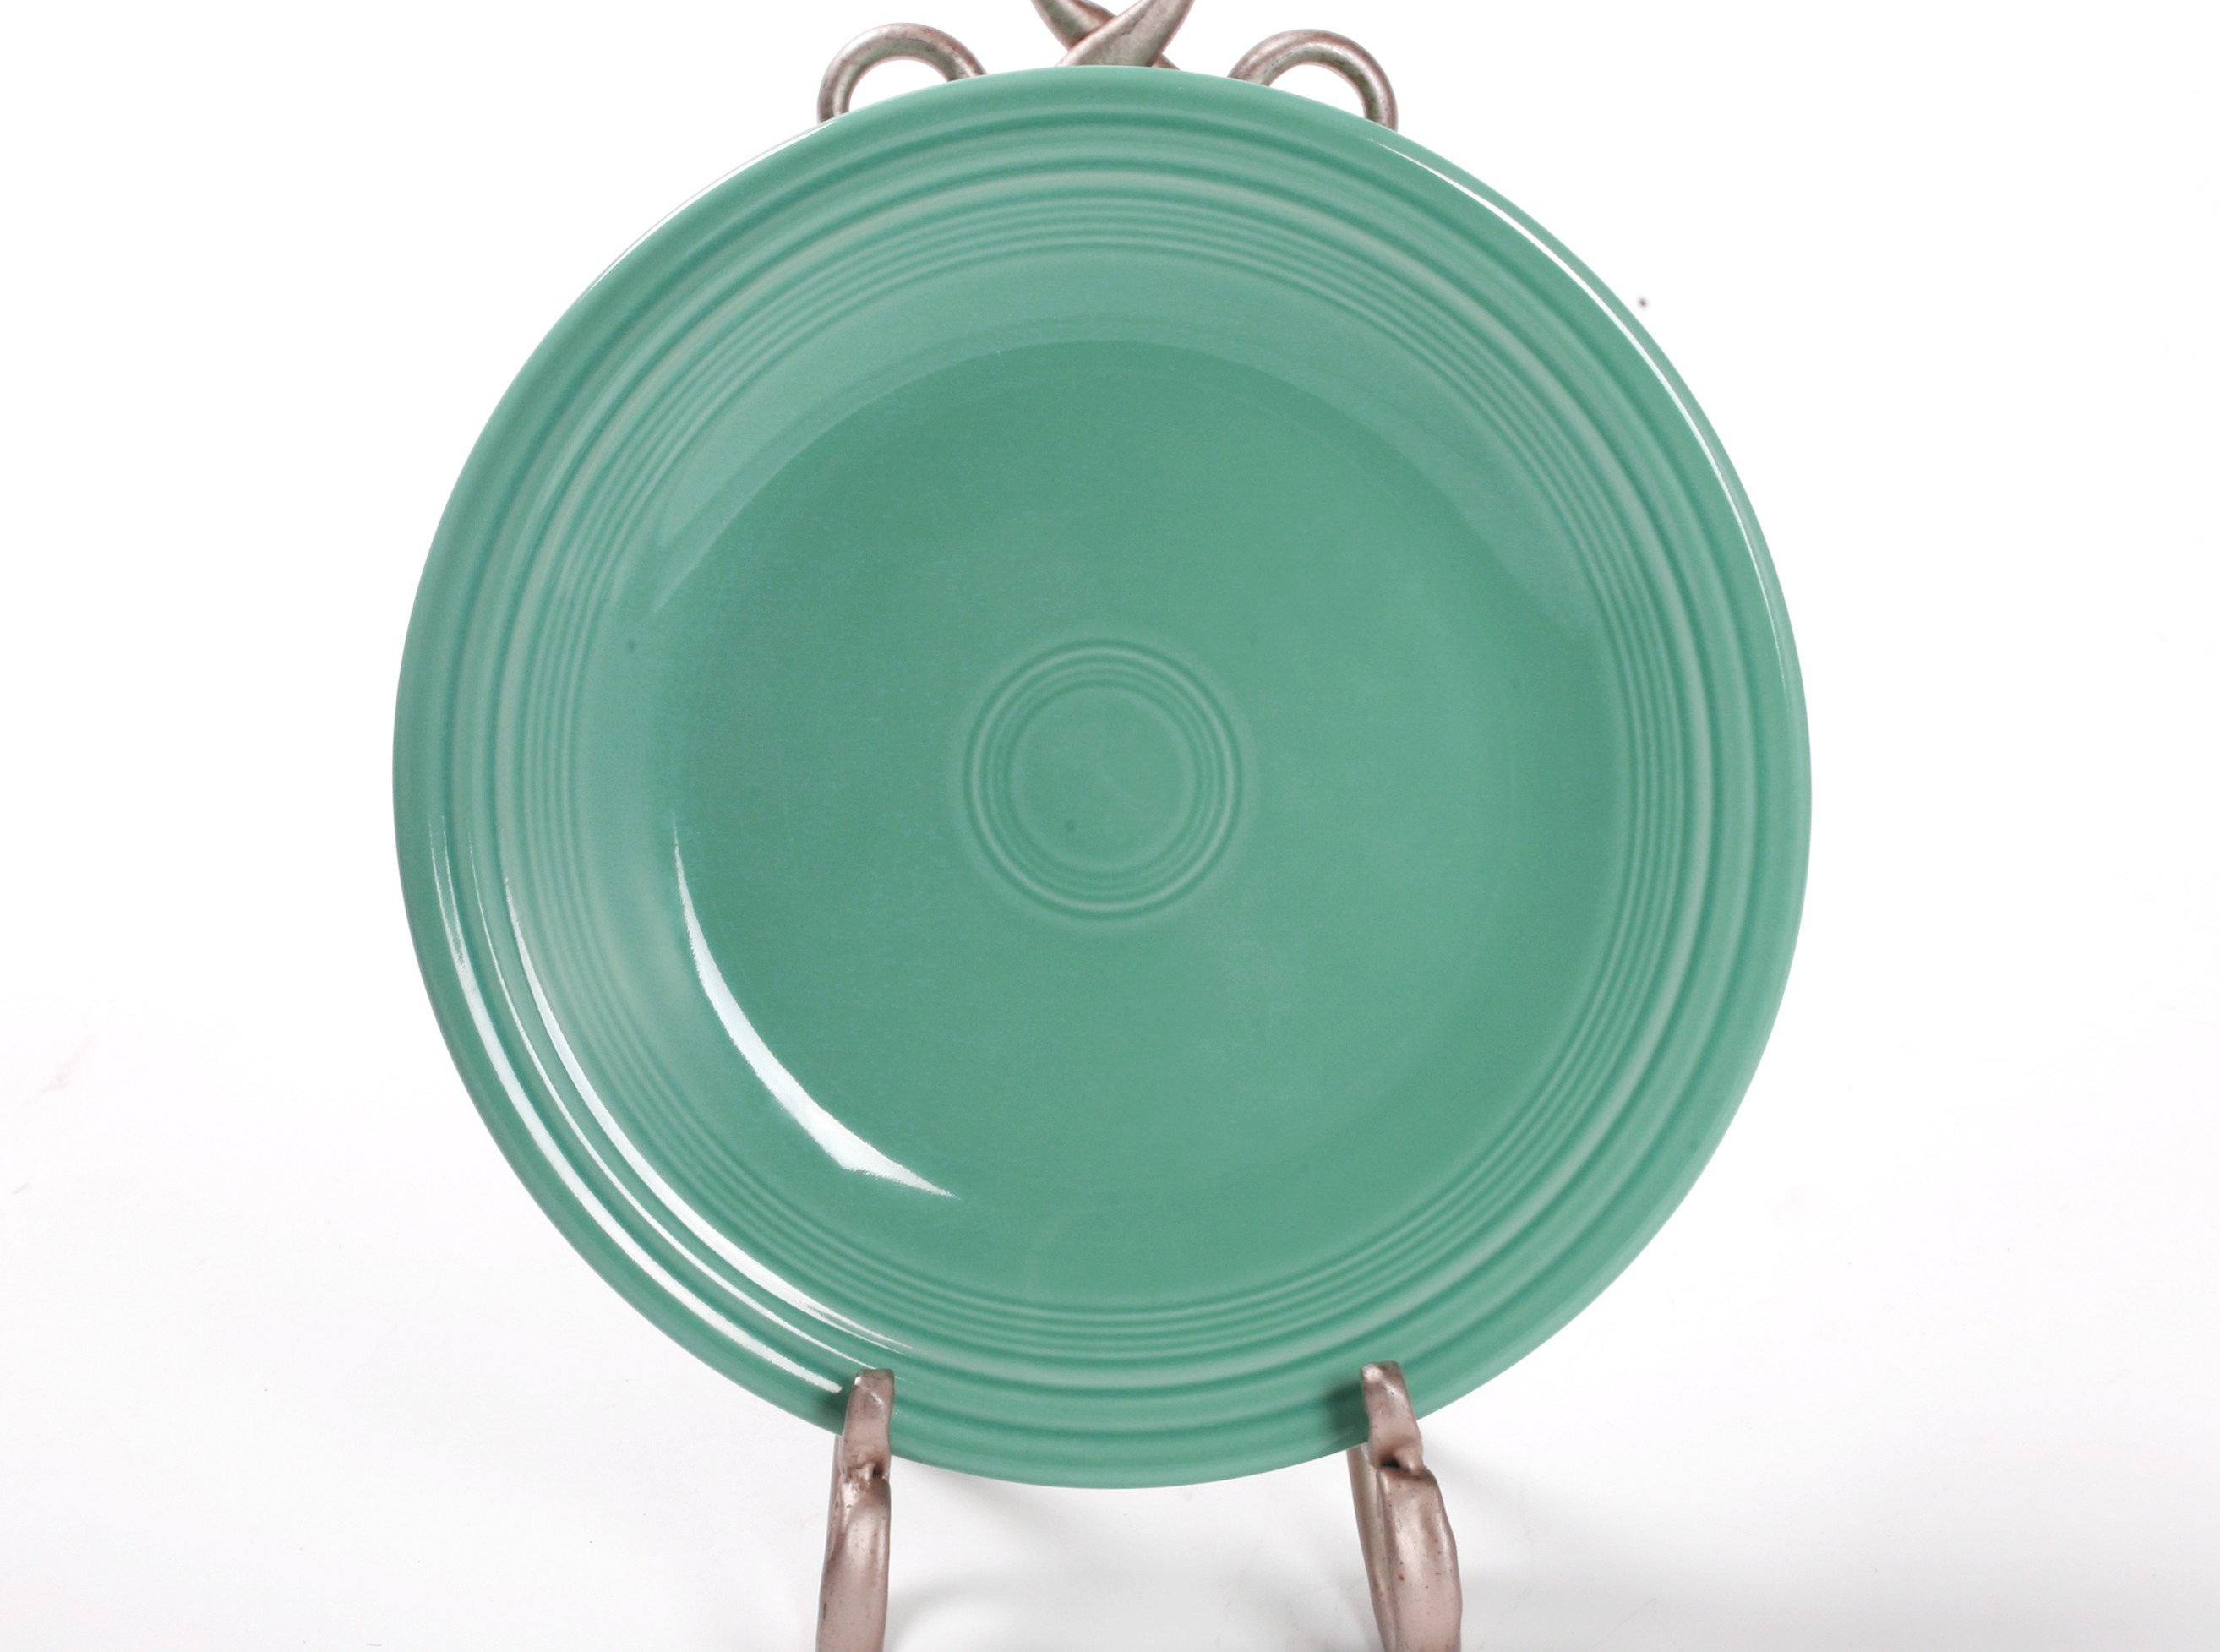 Awesome Collections Of Fiestaware For Dinnerware Ideas: Charming Turquoise Plate By Fiestaware For Dinnerware Ideas